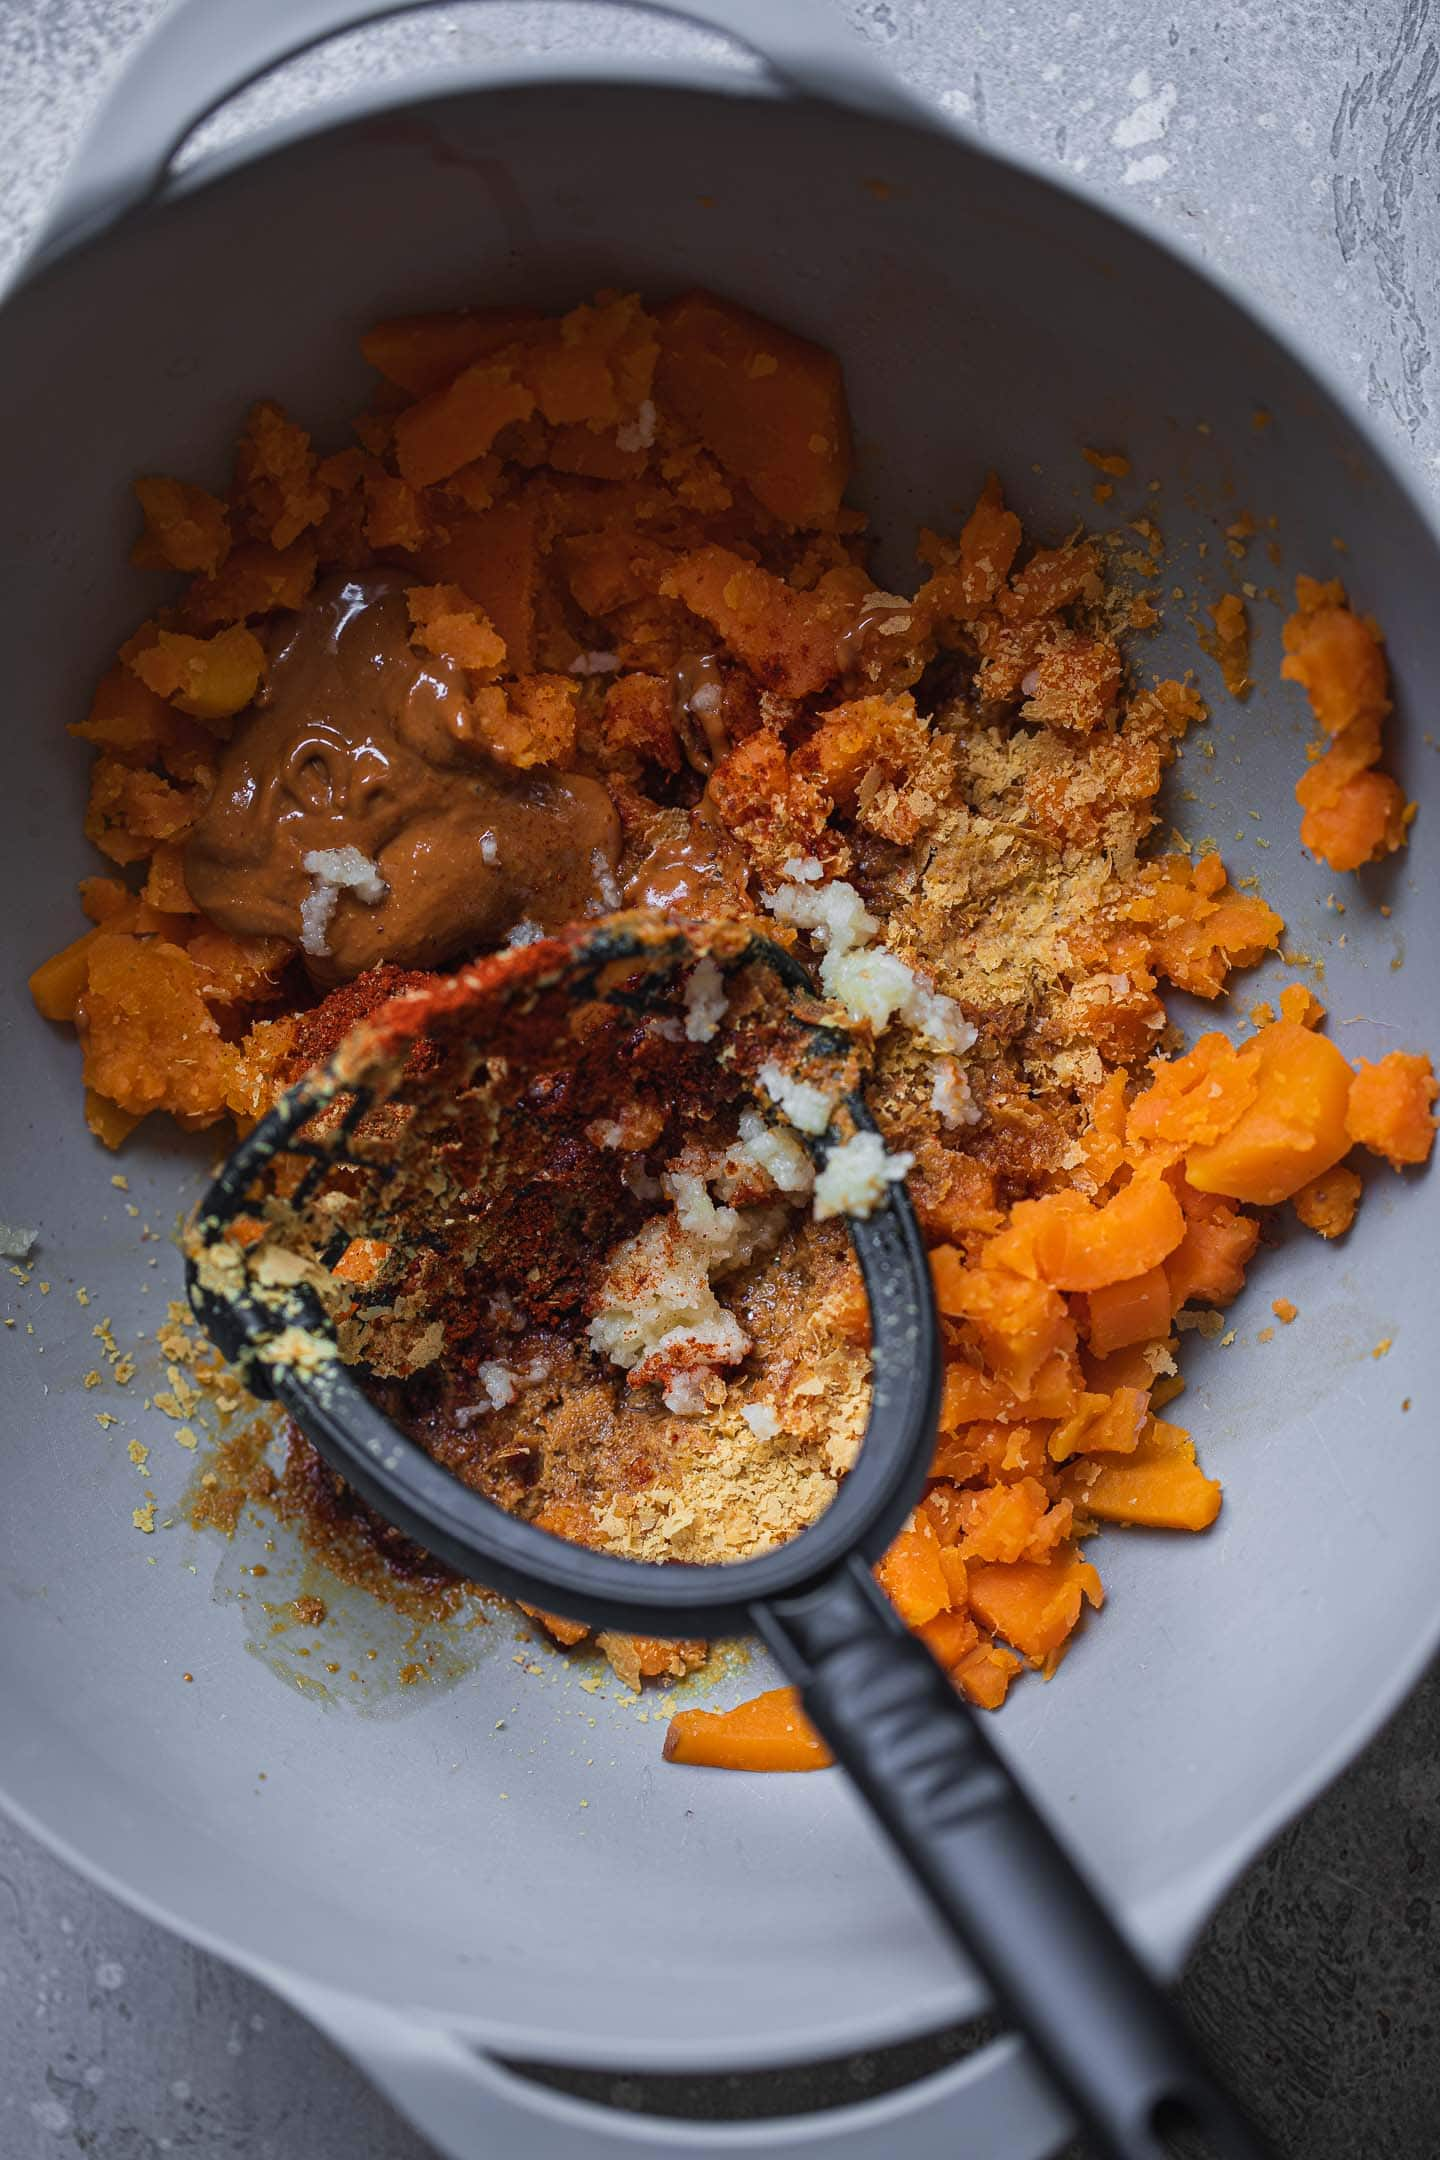 Mashed sweet potato in a mixing bowl